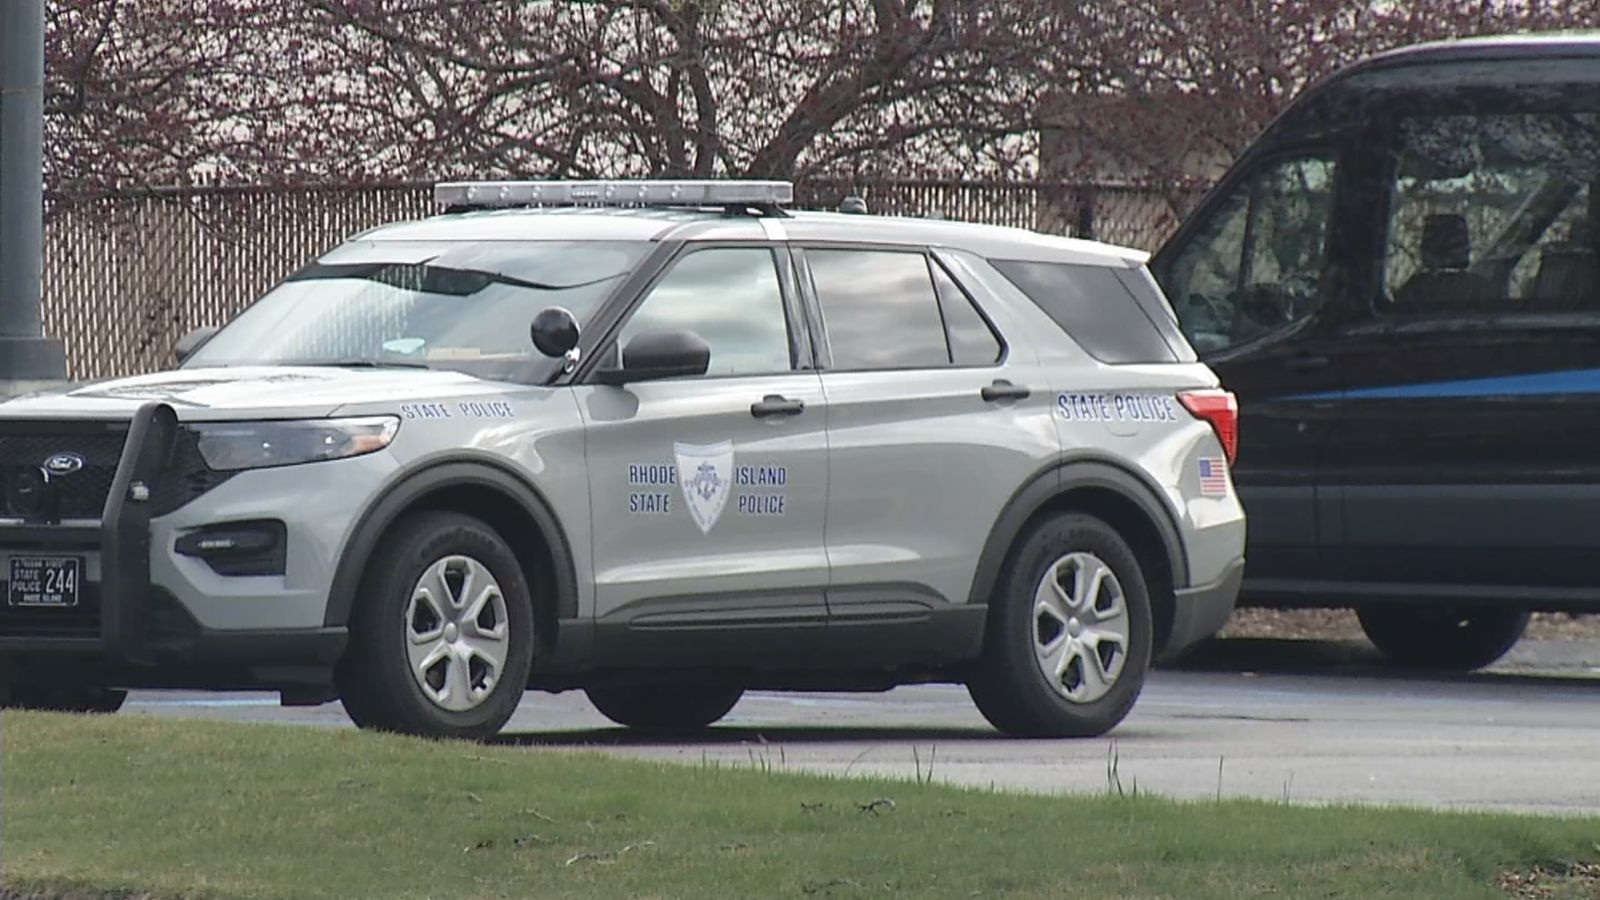 A heavy Rhode Island State Police presence was seen parked outside the Wyndham Providence Airport Hotel on Post Road in Warwick. (WJAR)